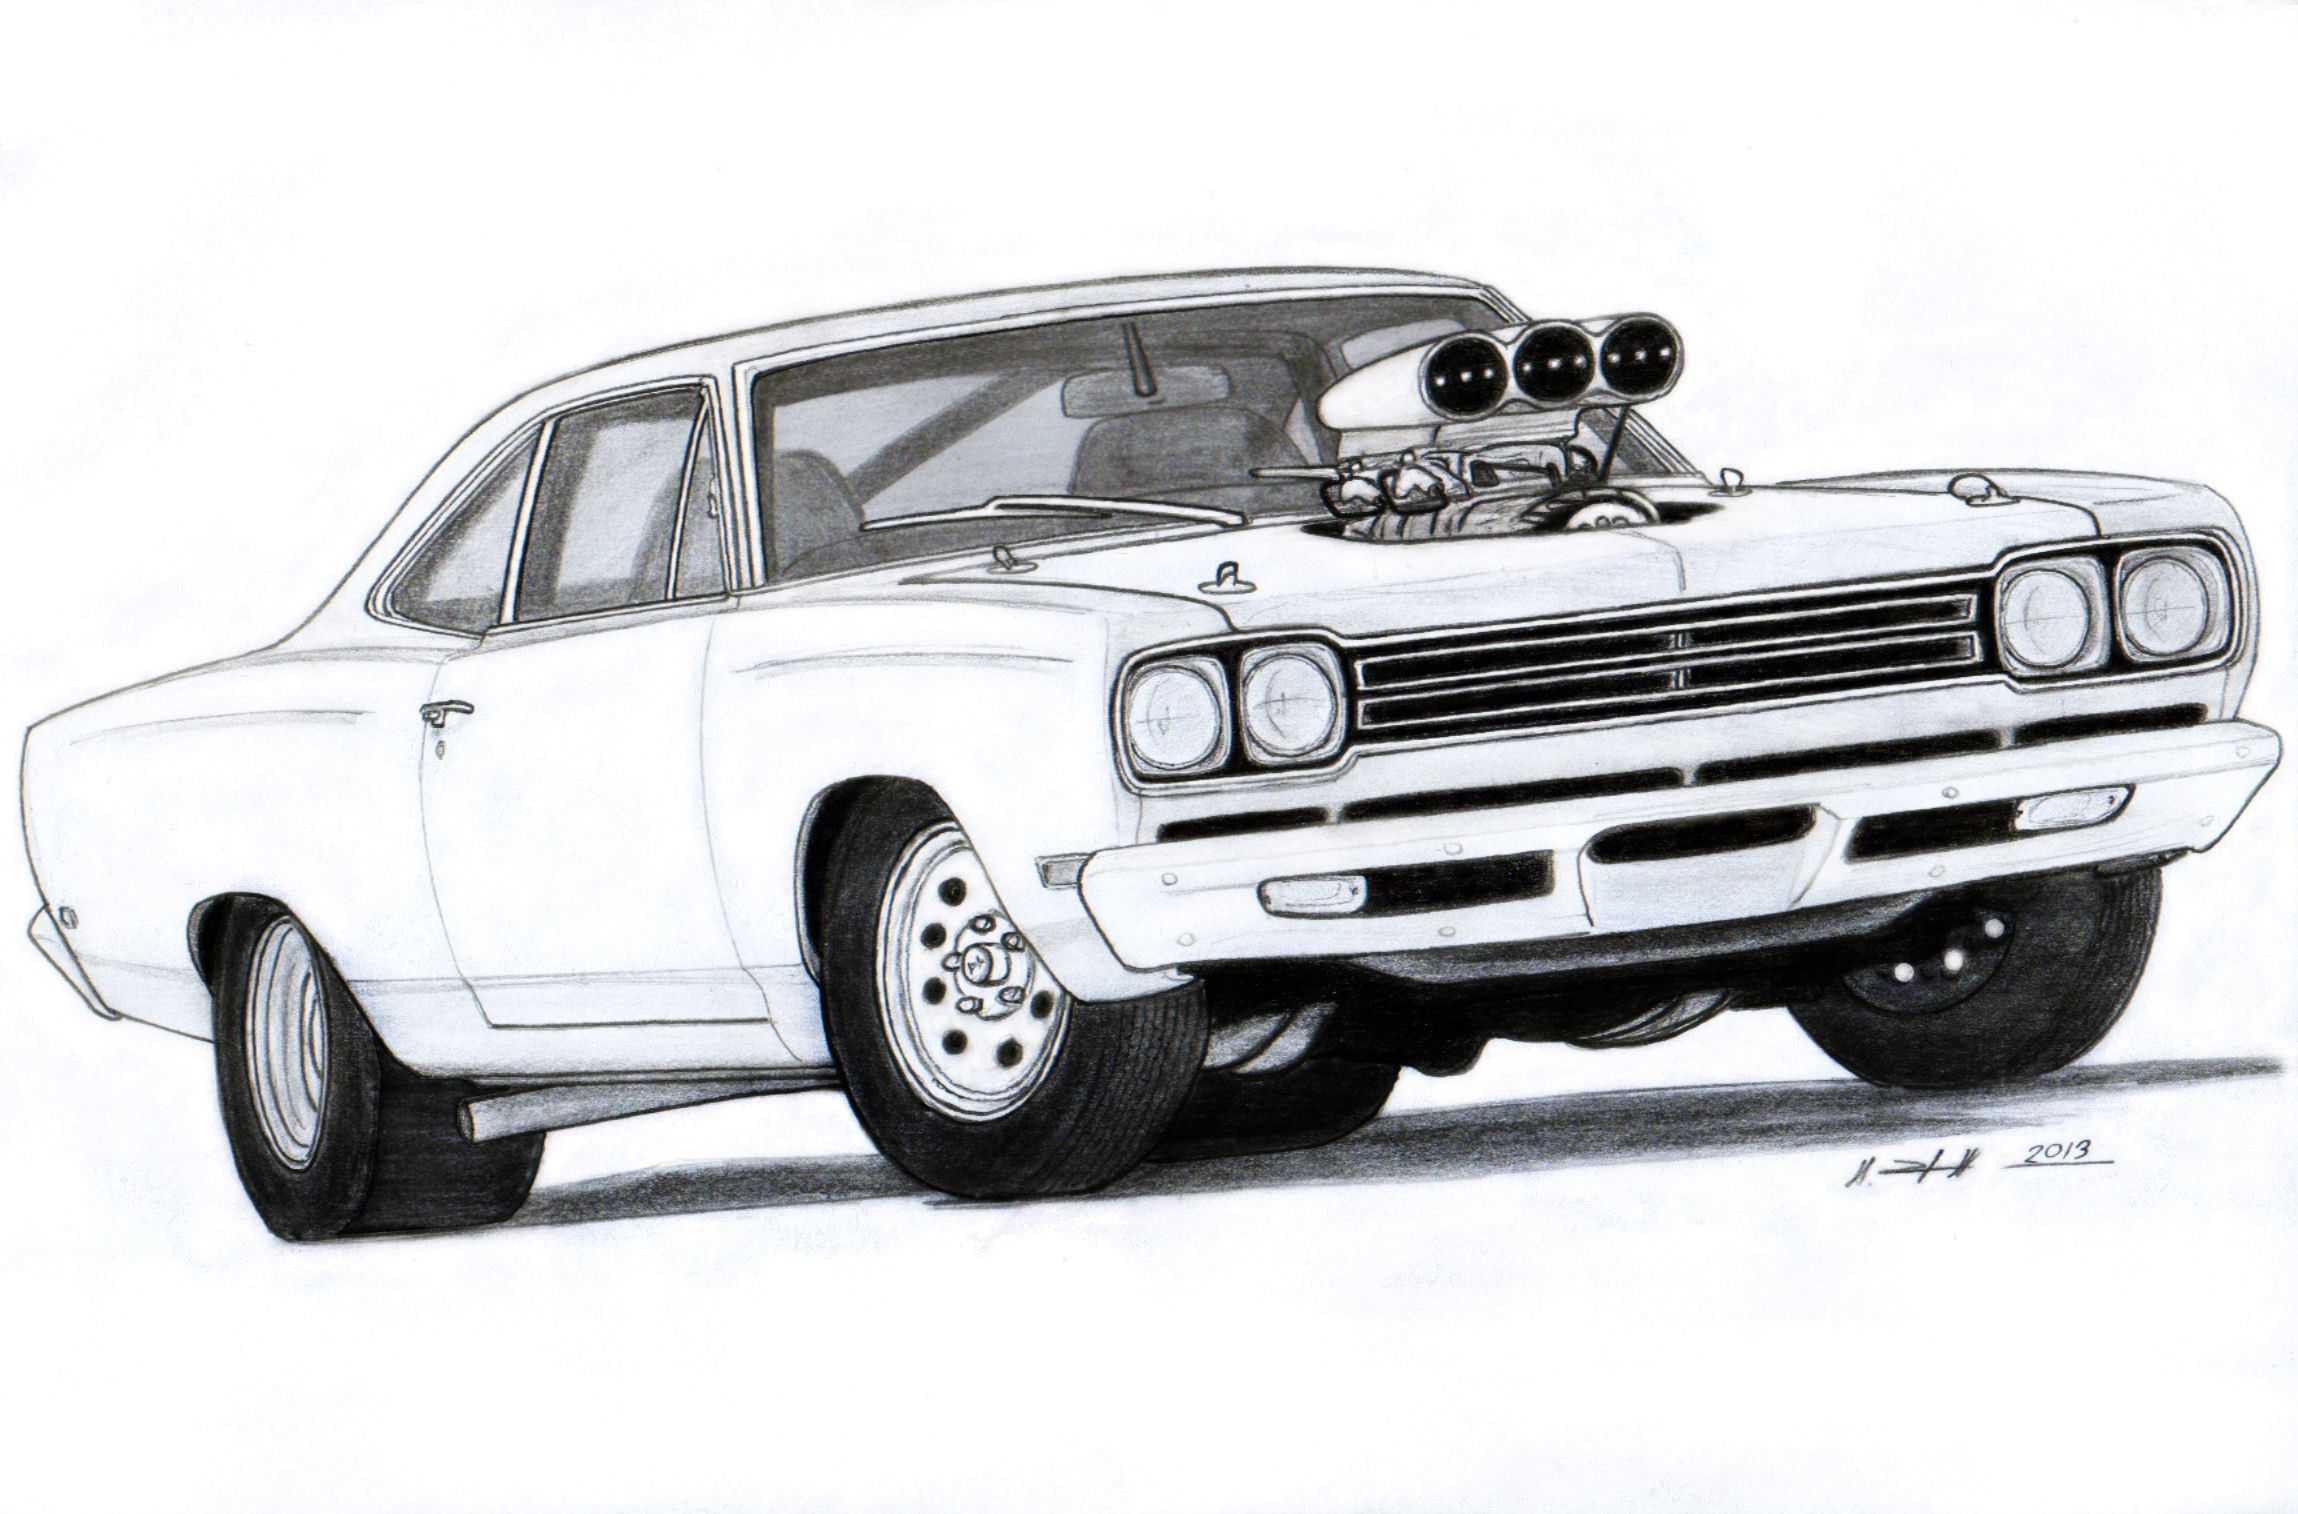 fast and furious drawing | Pencil Art Of Fast And Furious Movie Cars ...